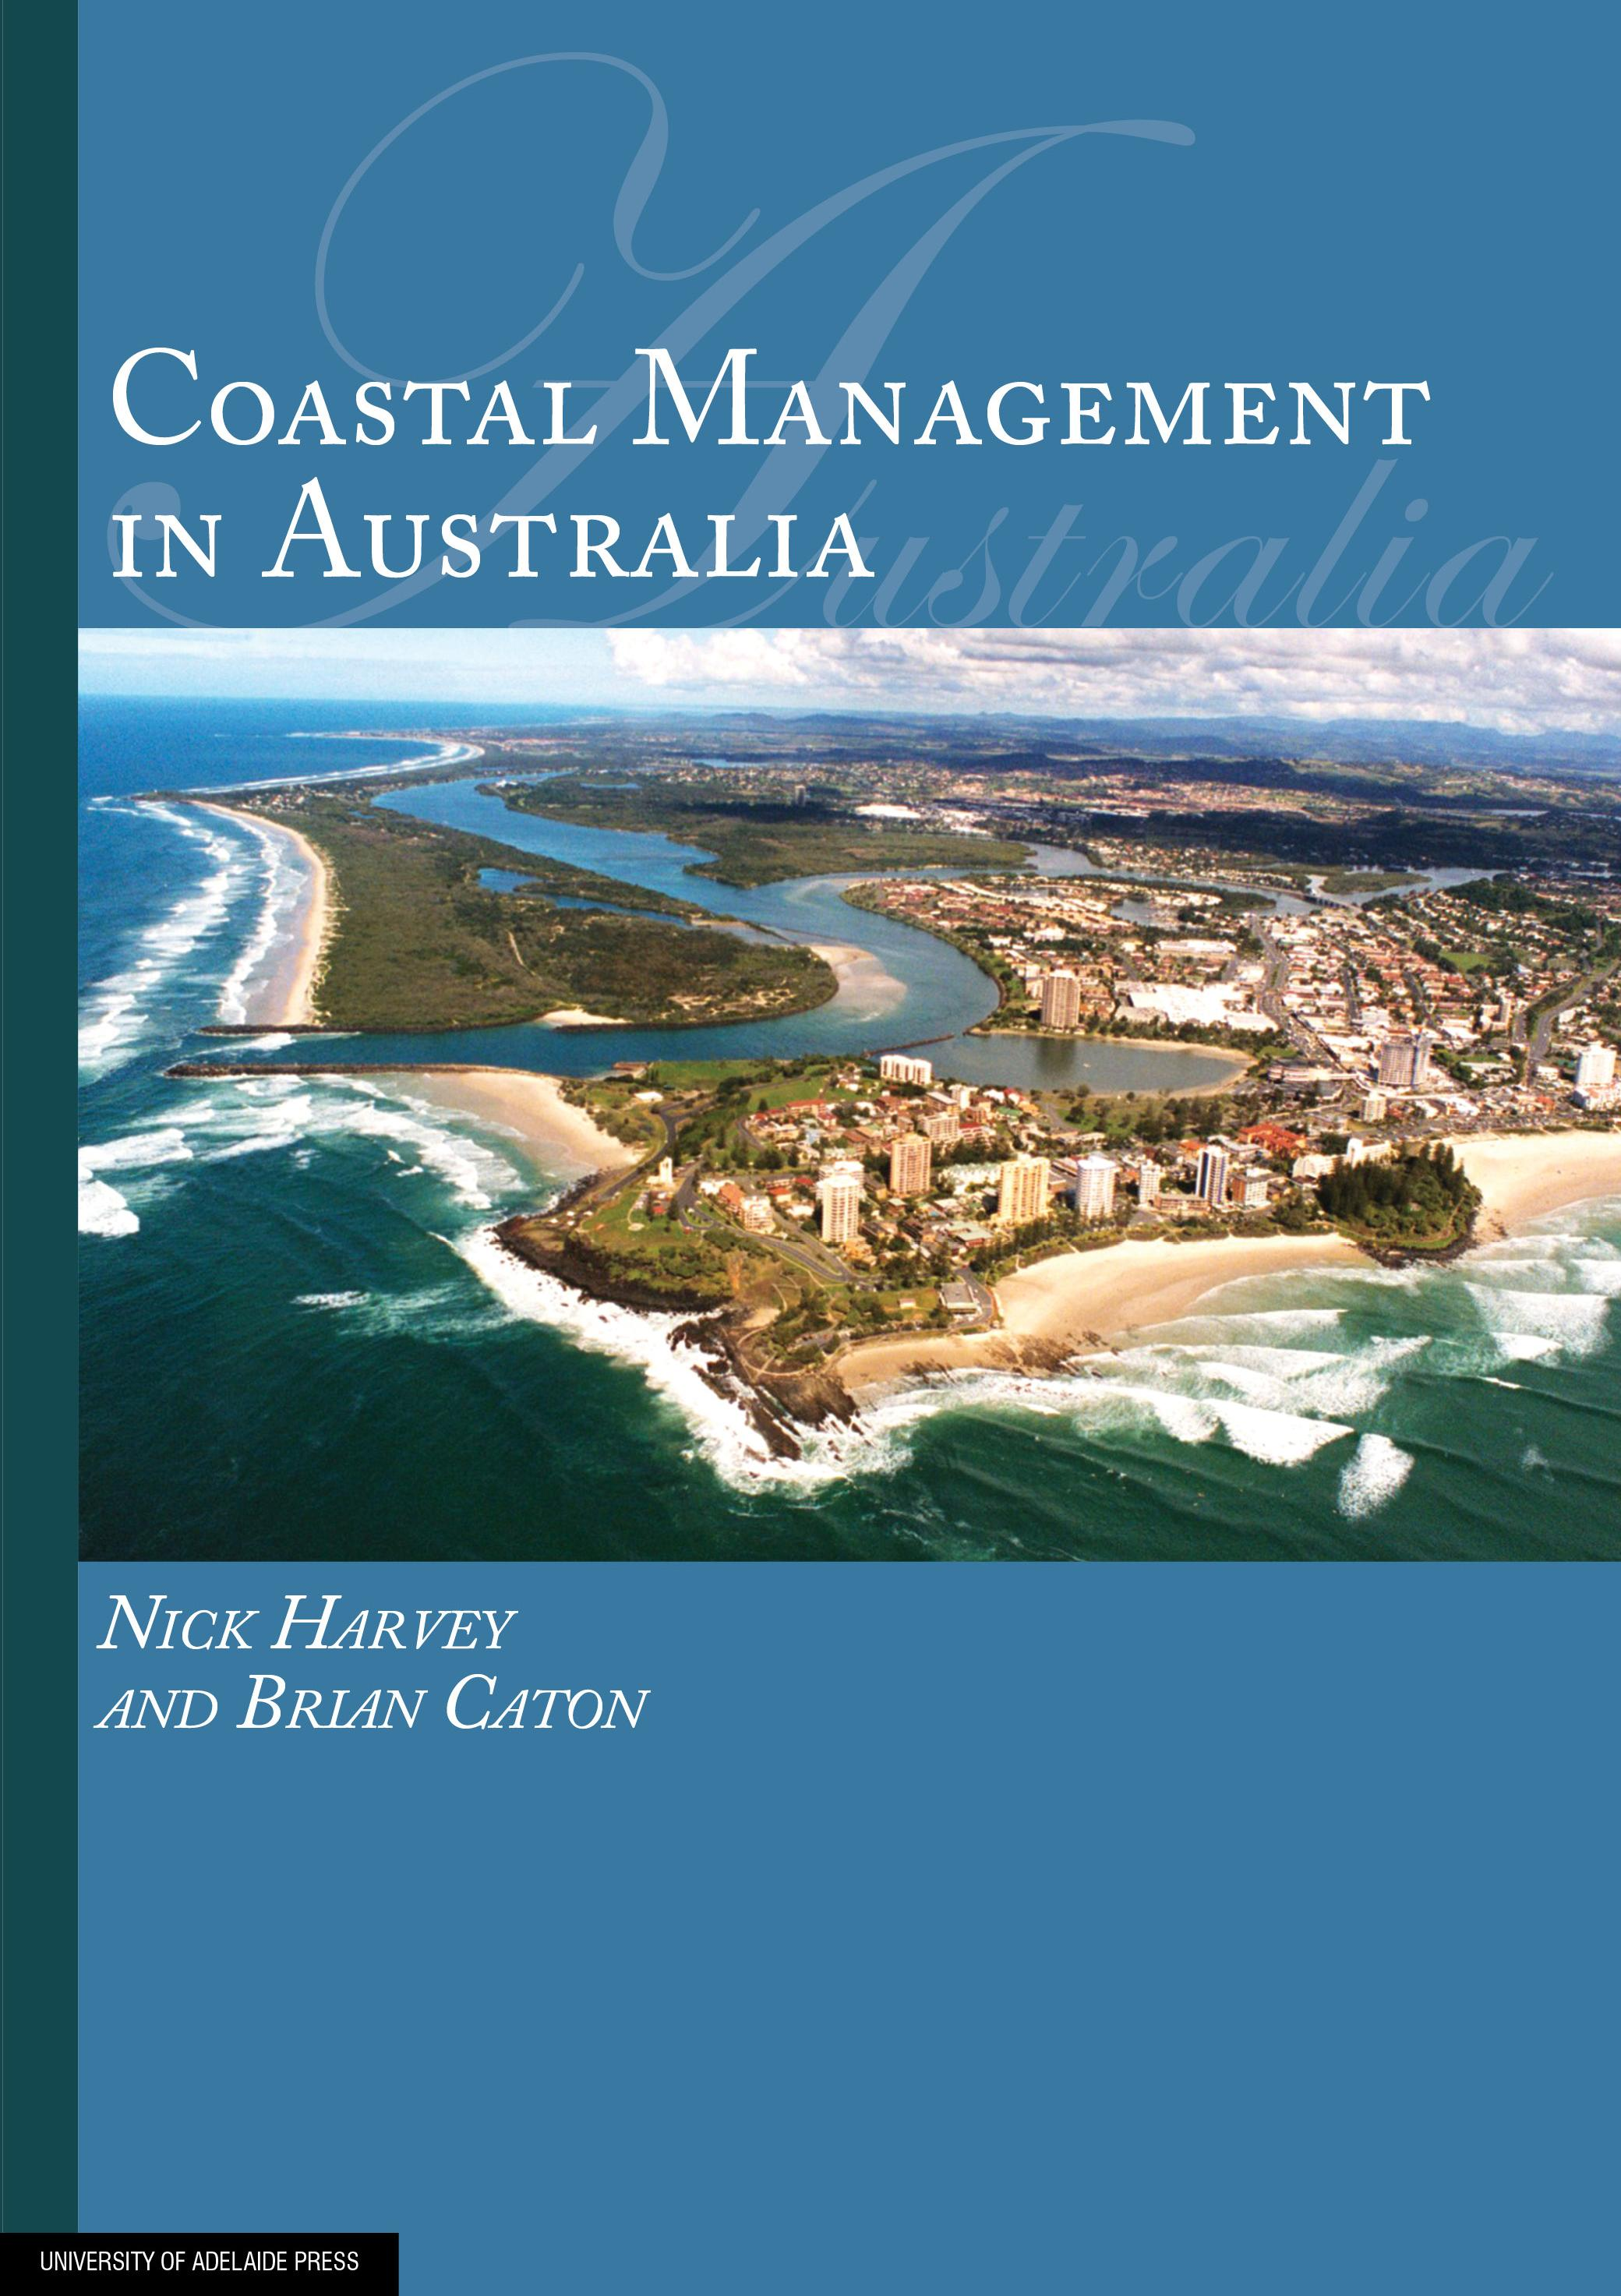 Coastal management cover